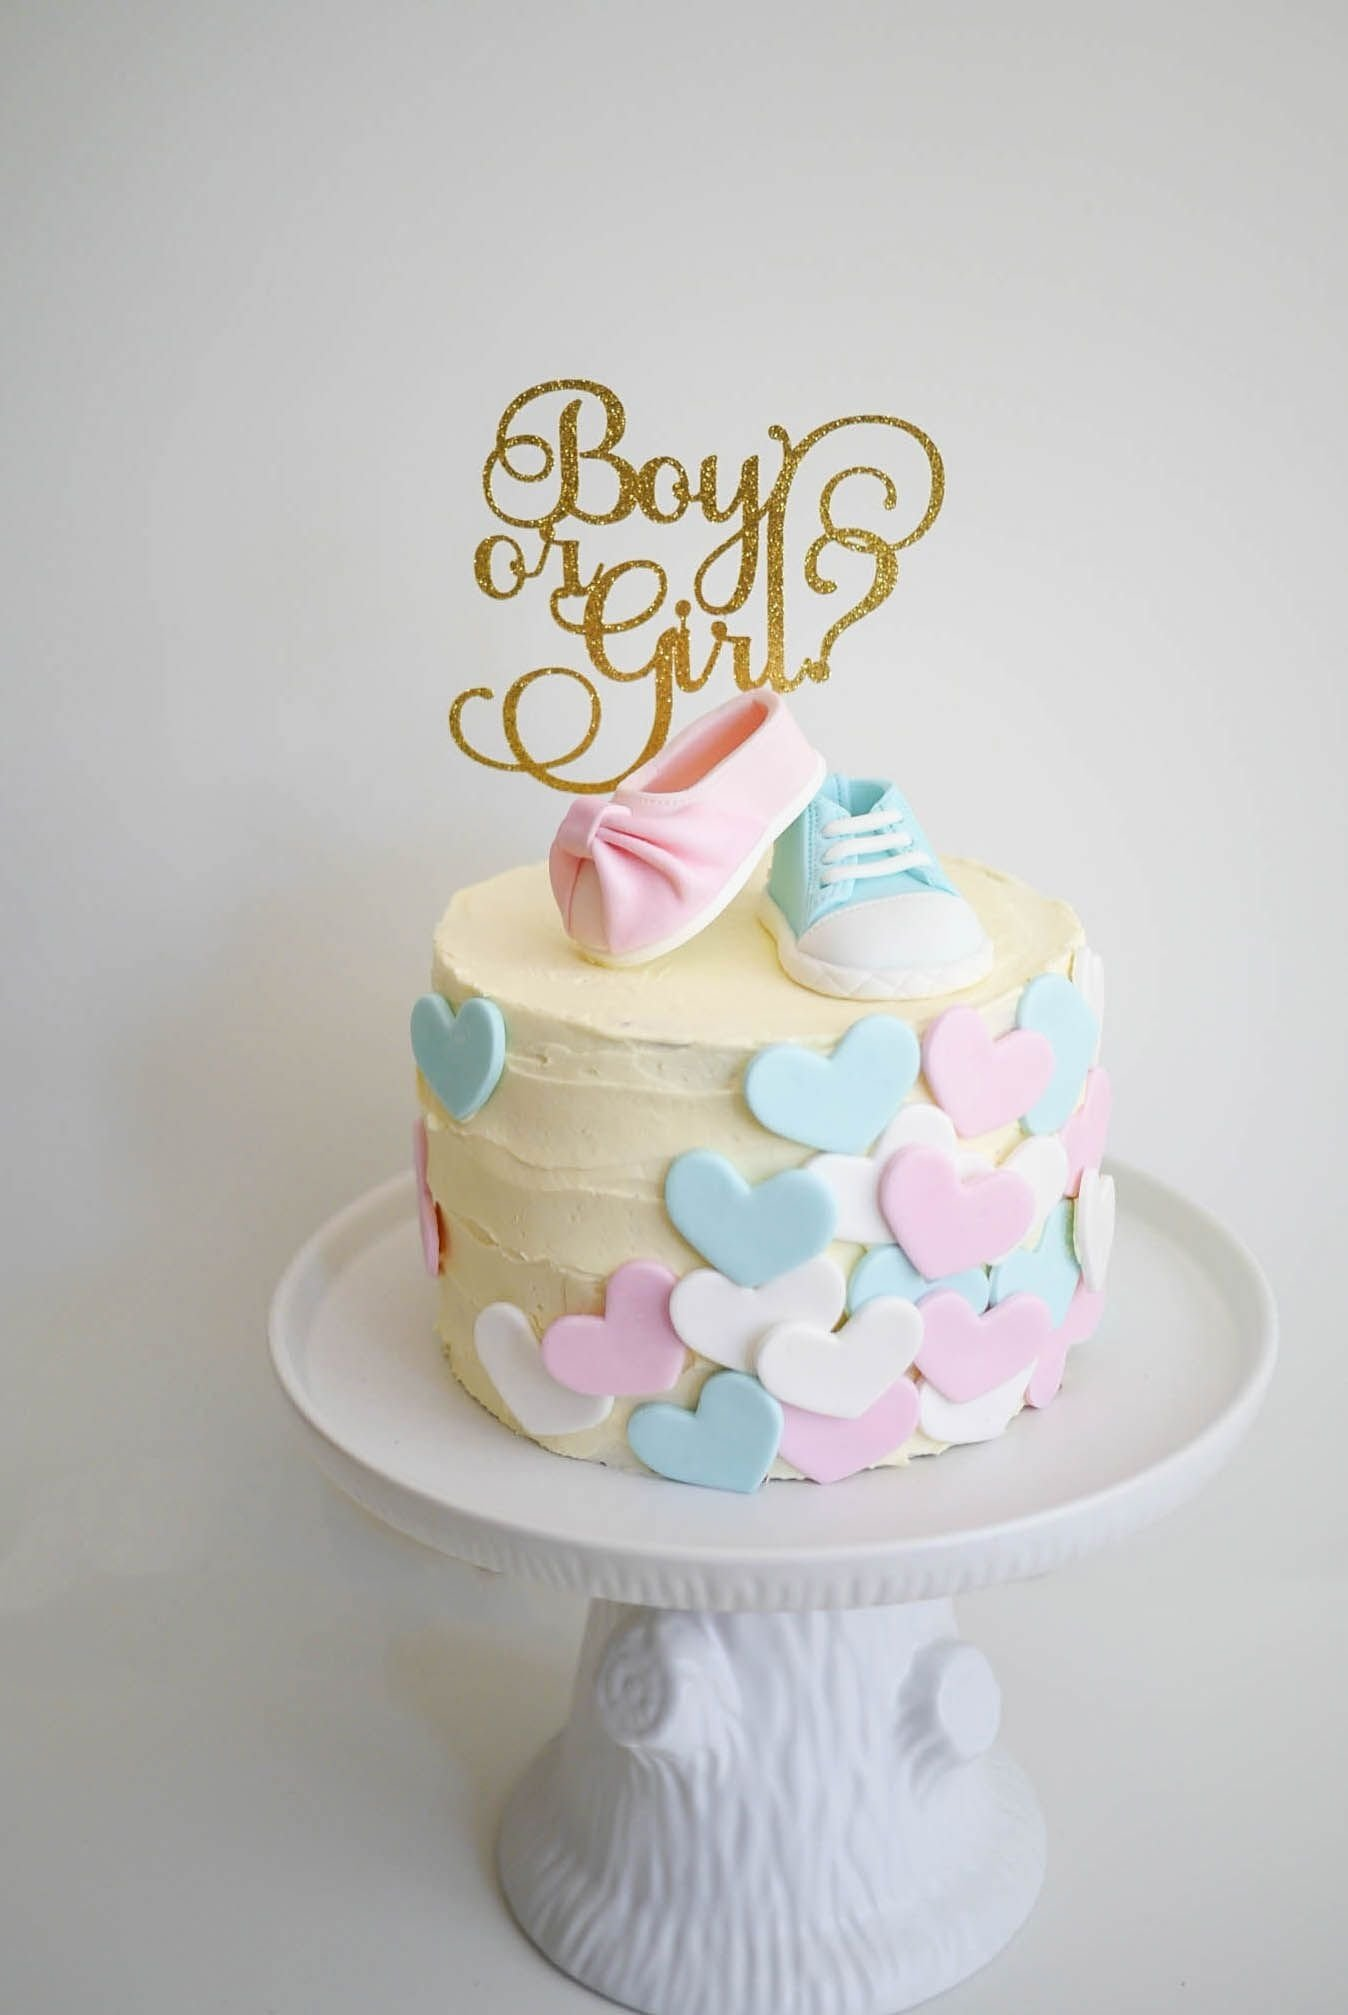 27 gender reveal party food ideas while pregnant | baby gender